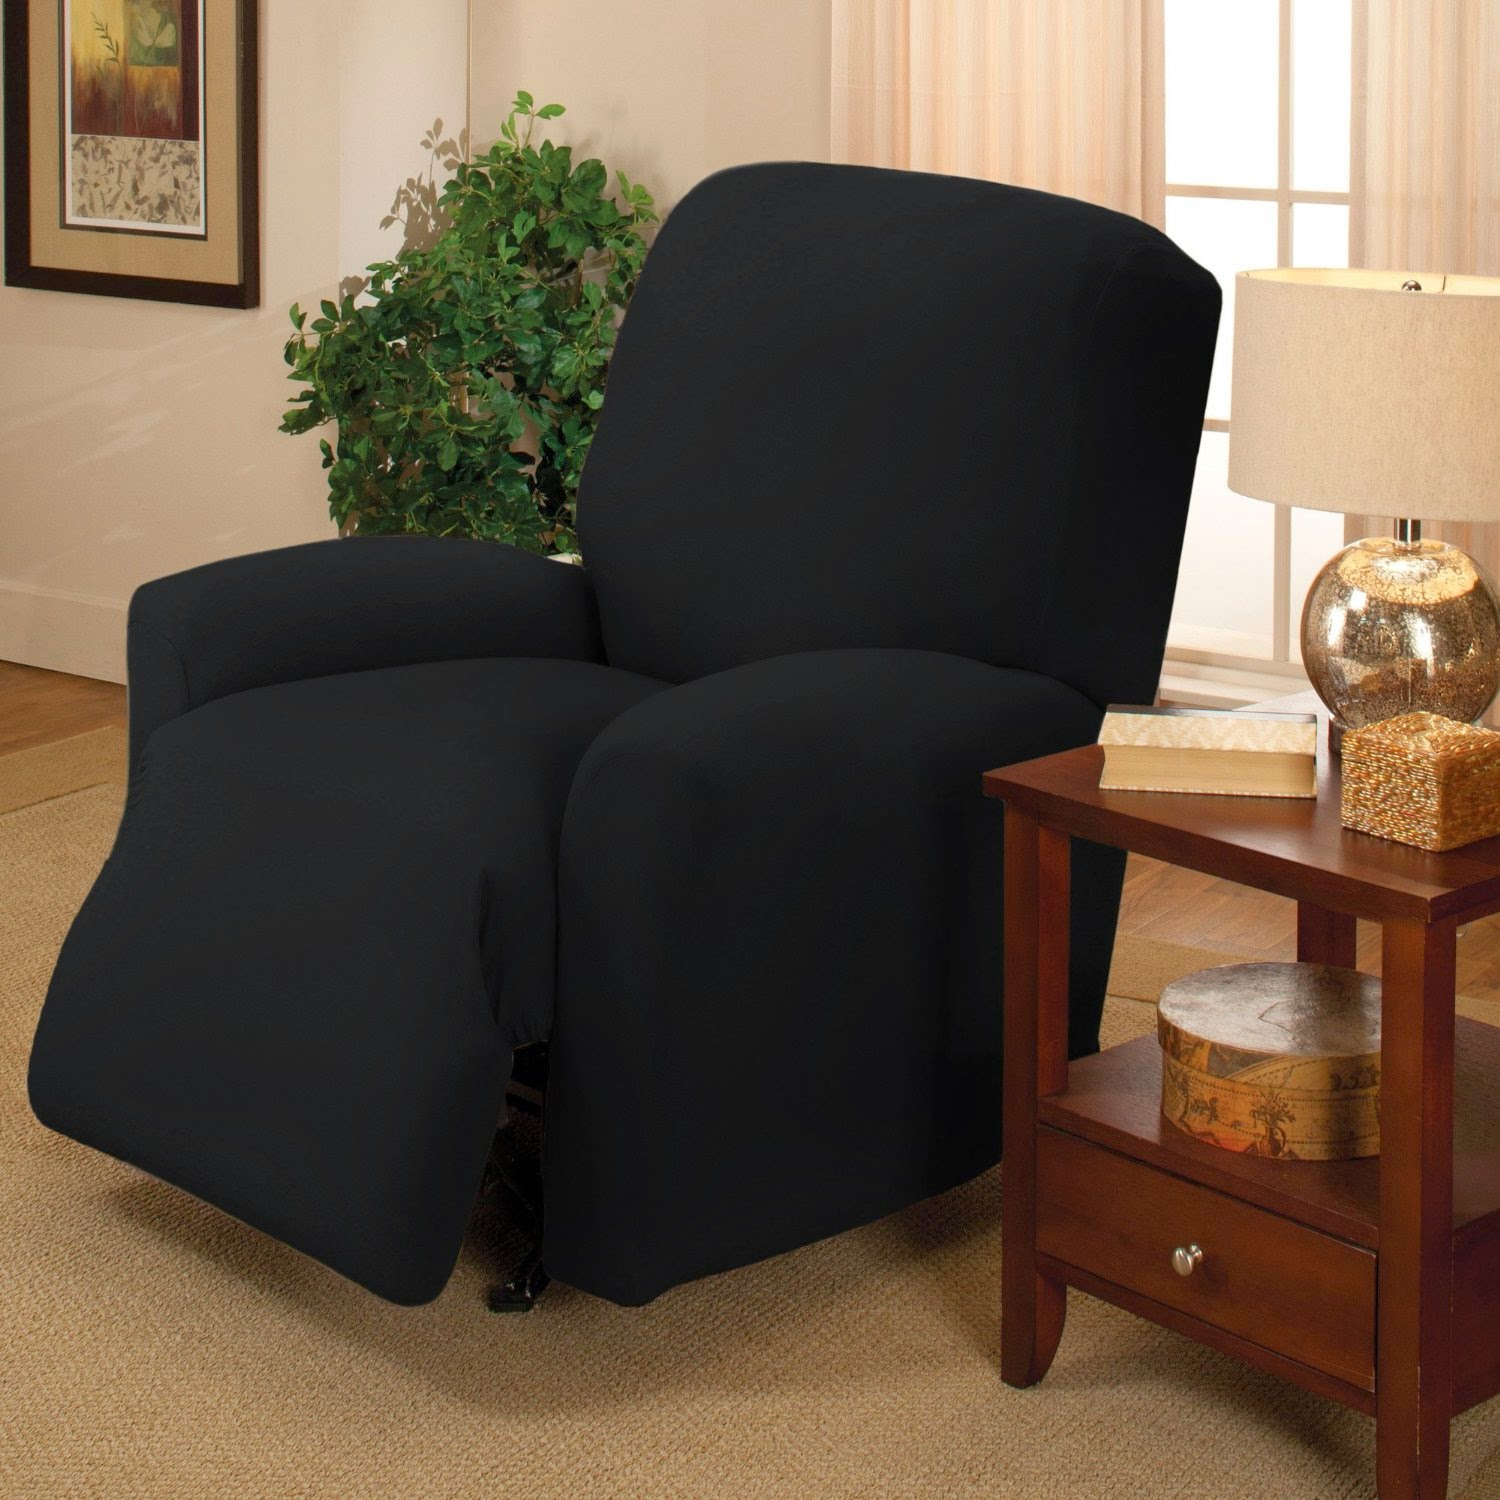 Phenomenal The Best Reclining Sofa Reviews Recliner Sofa Covers Uk Pdpeps Interior Chair Design Pdpepsorg